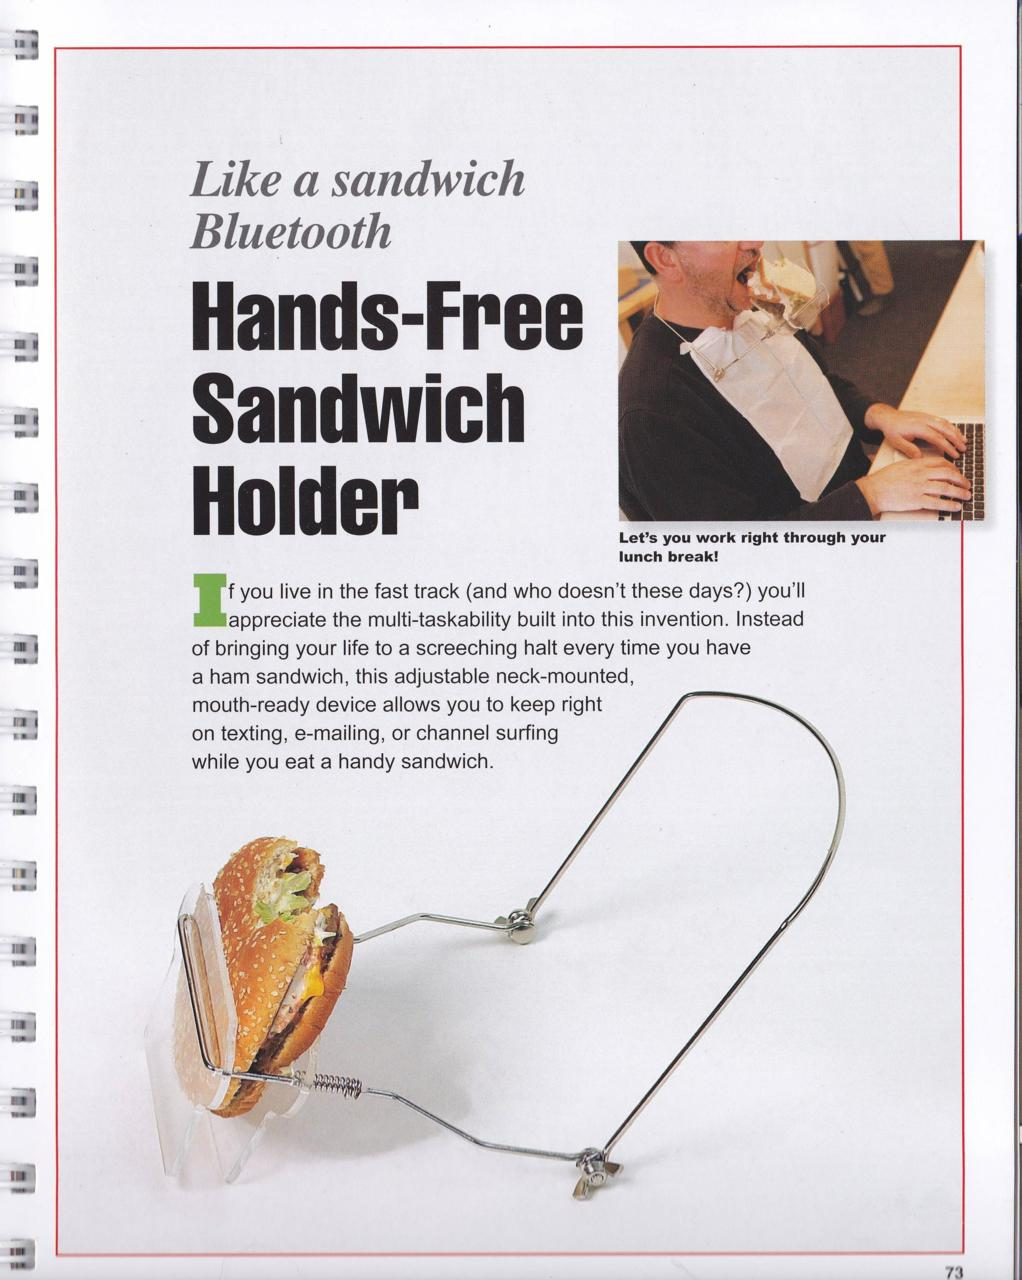 Hands-Free Sandwich Holder: When Working Is More Important